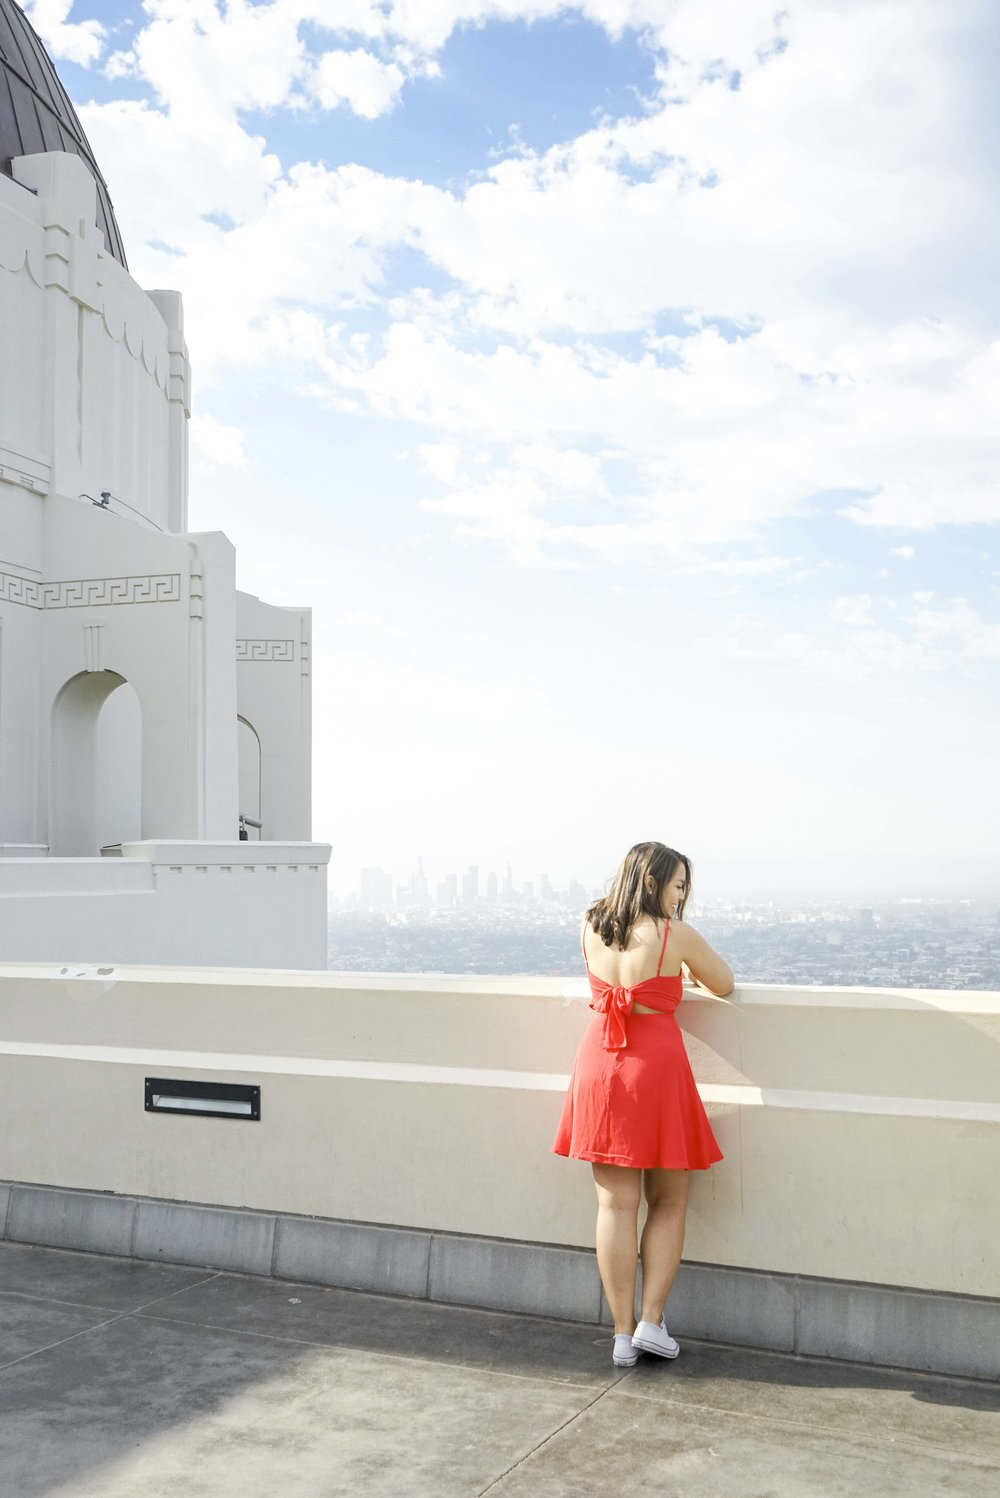 Griffith_Observatory_013.jpg